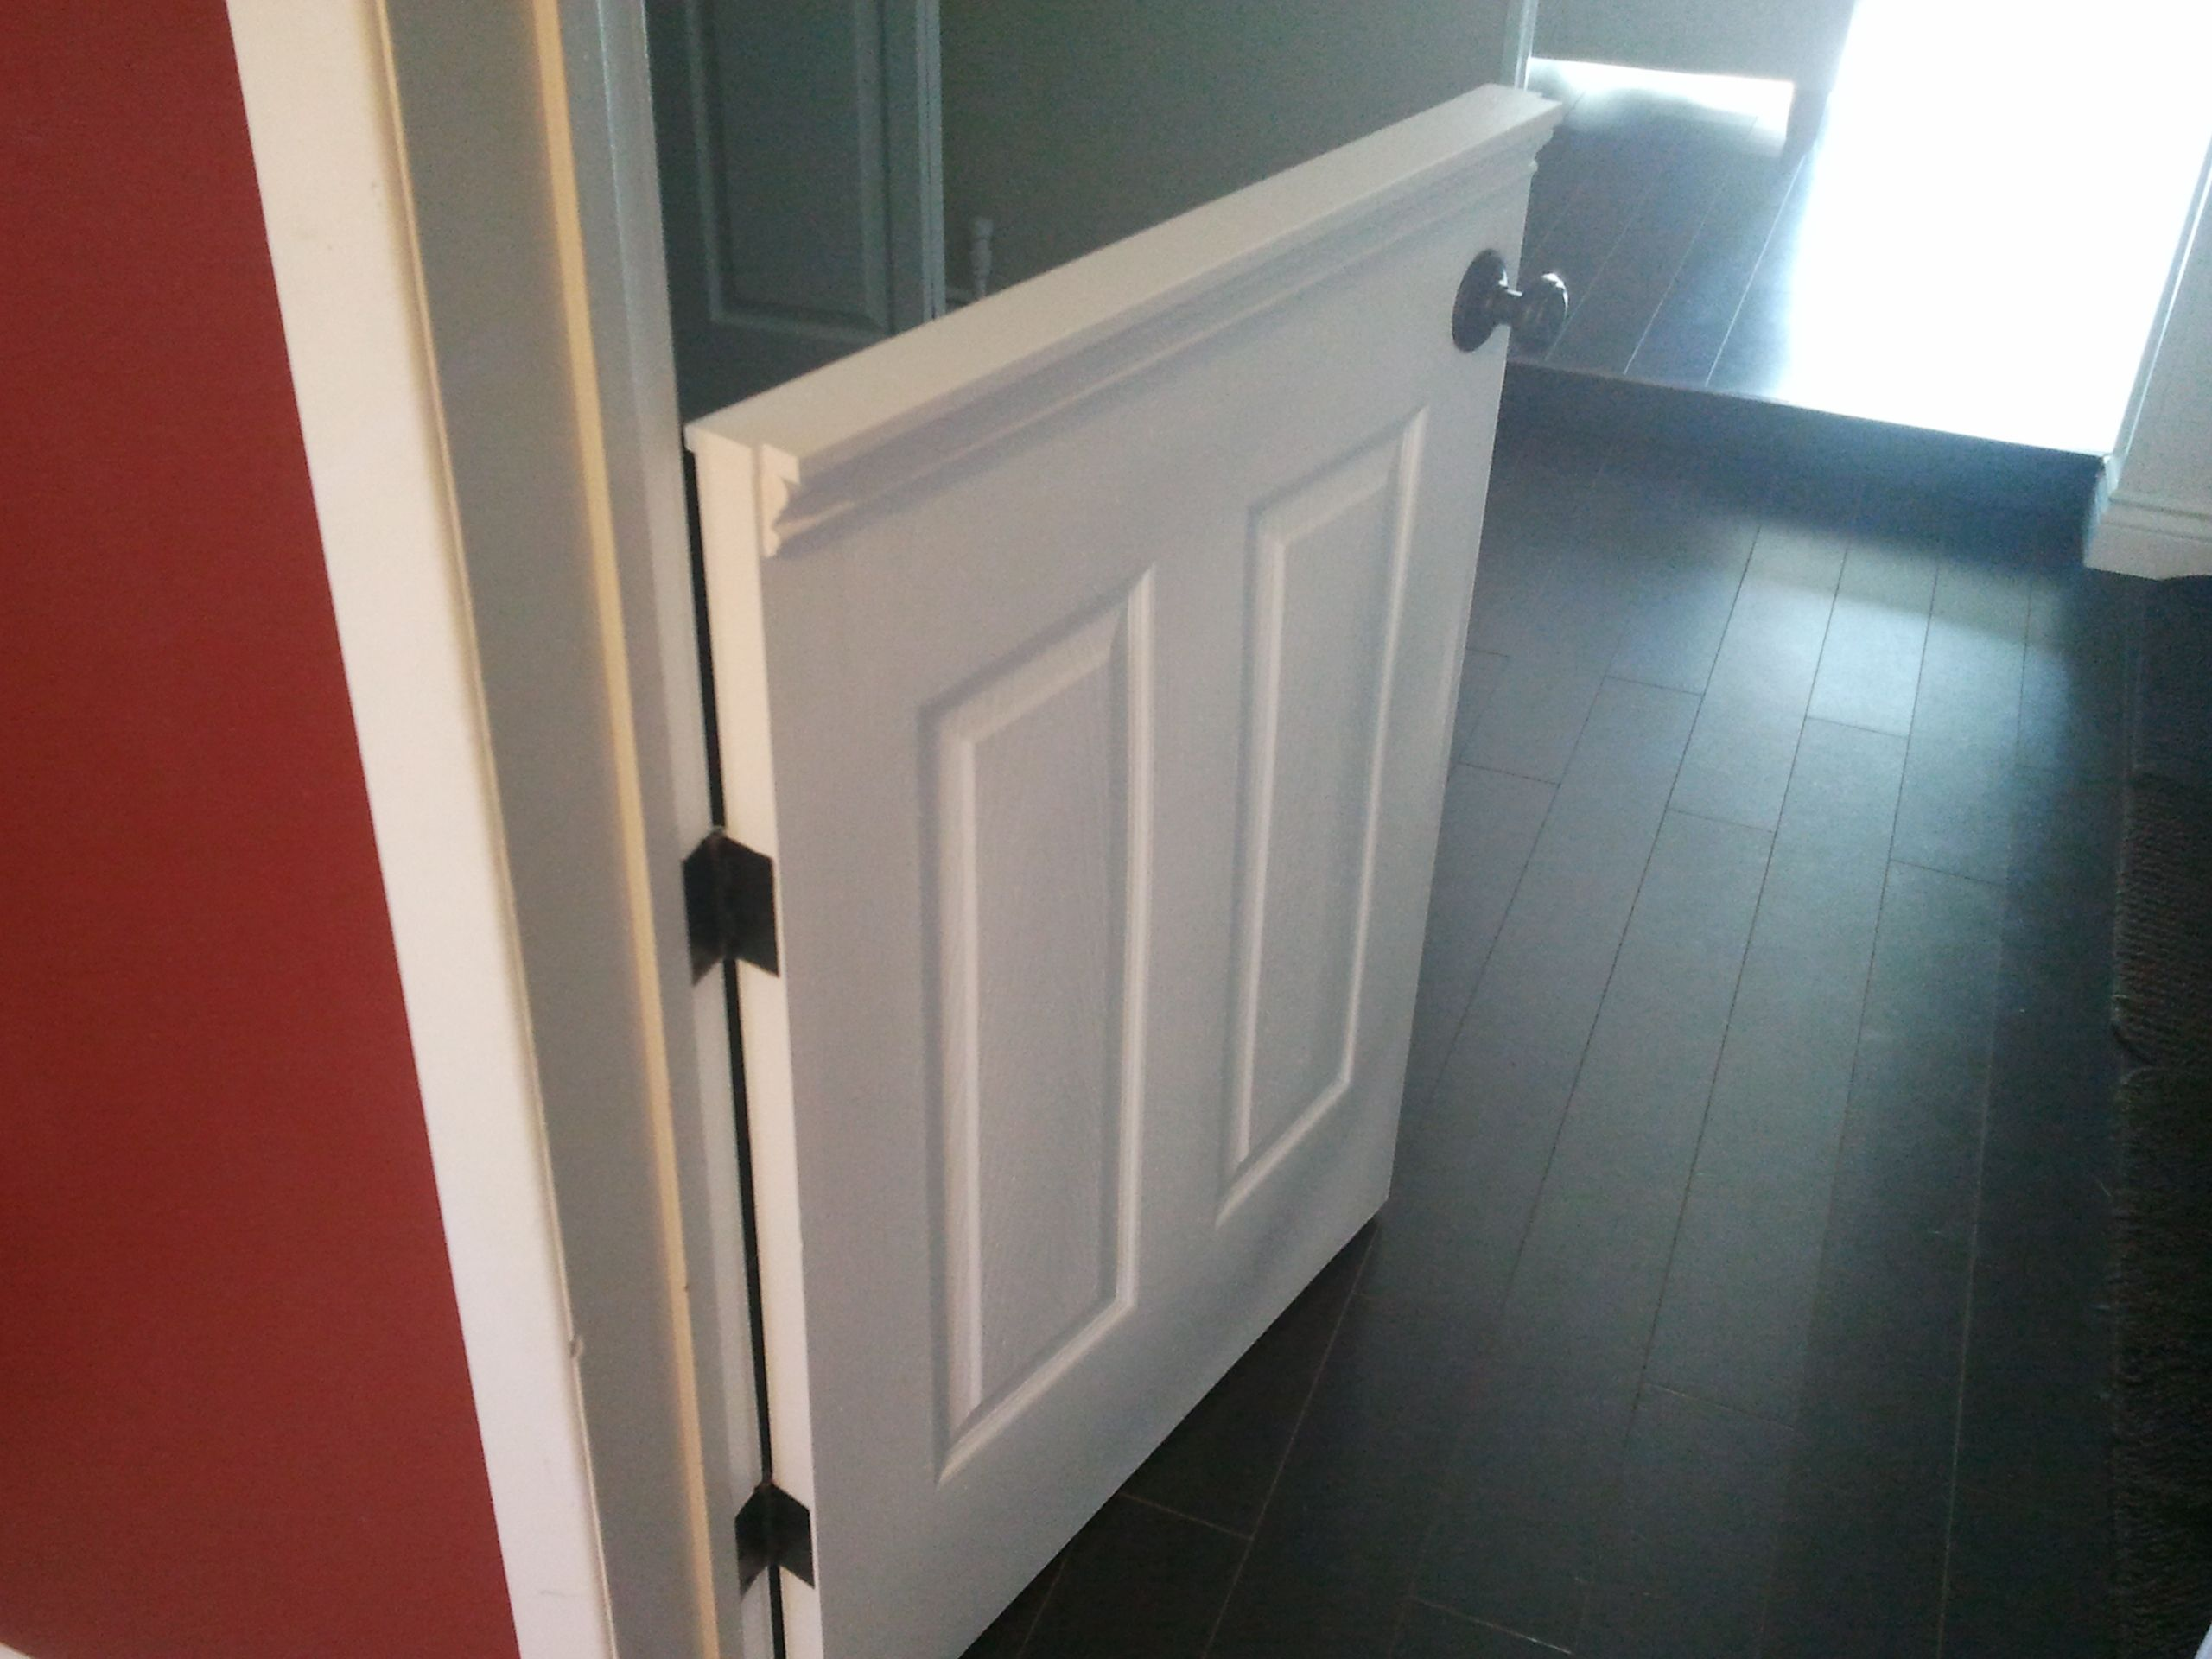 Welcome to Interior Door Replacement Company. Replacing old interior doors is among the most effective ways to renew the sense of pride you once had for your home. New doors instantly create a dramatic change that transforms your home into a rich, secure, and inviting place to entertain and live.